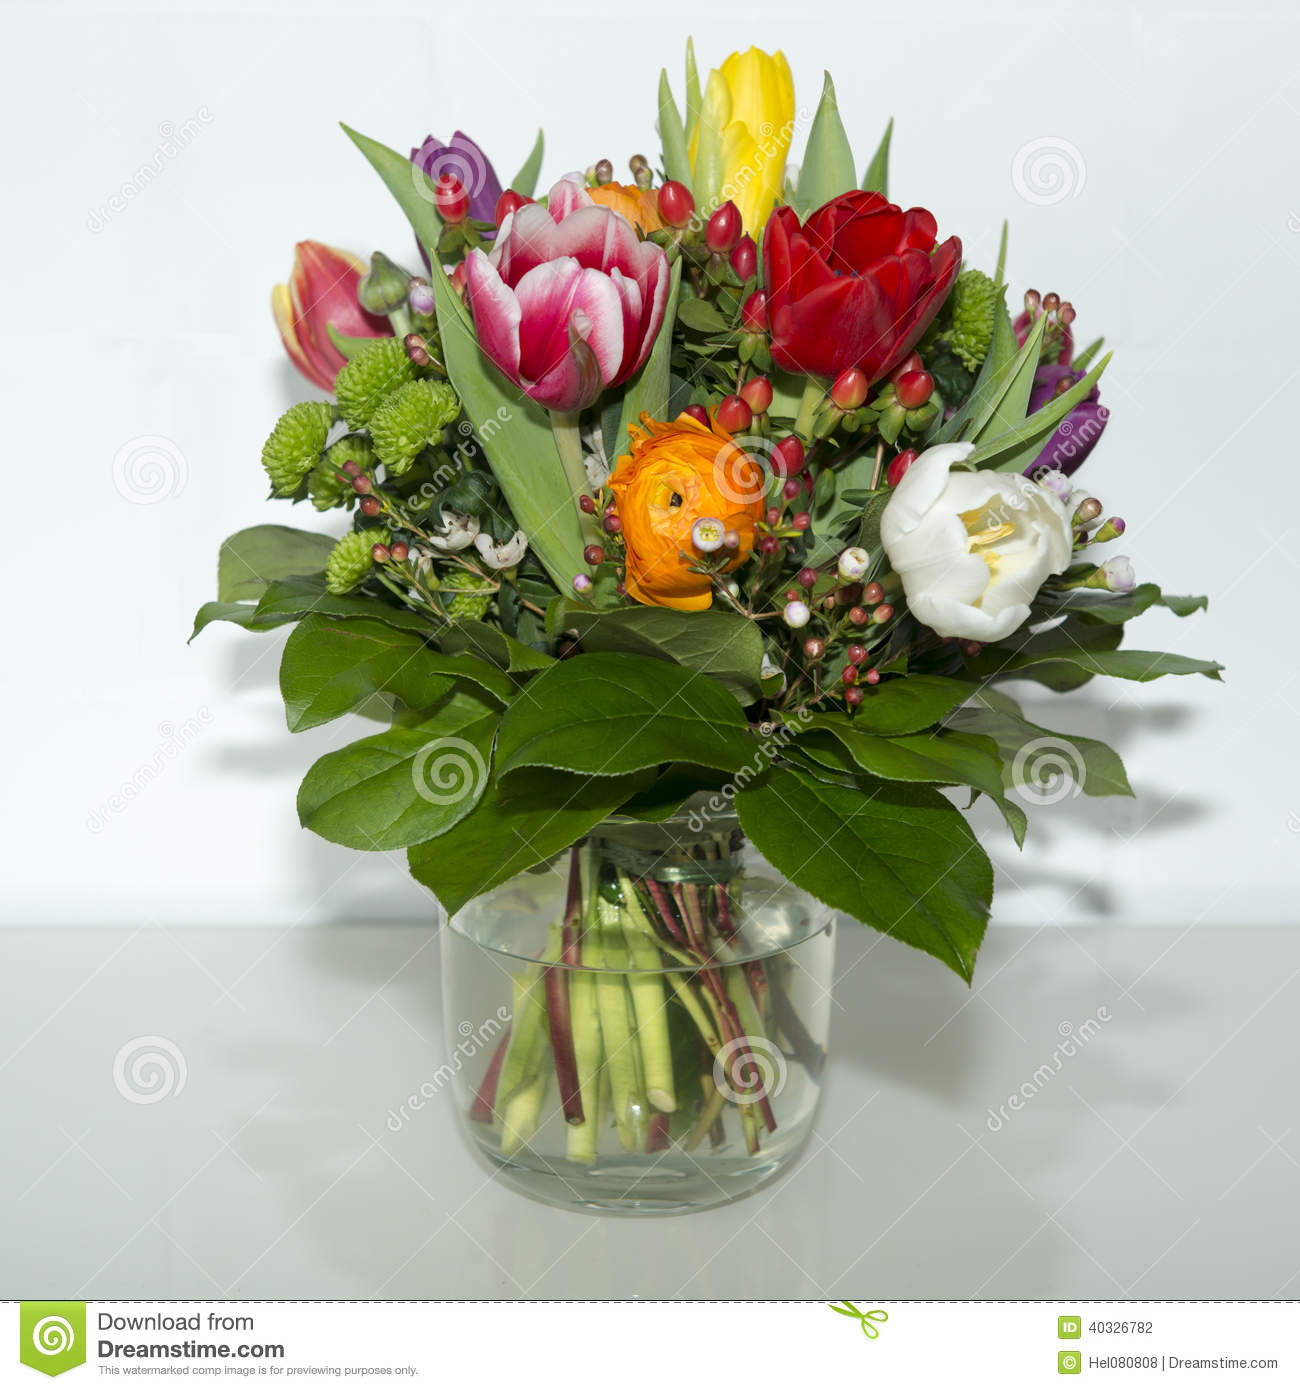 Images of spring flowers in a vase